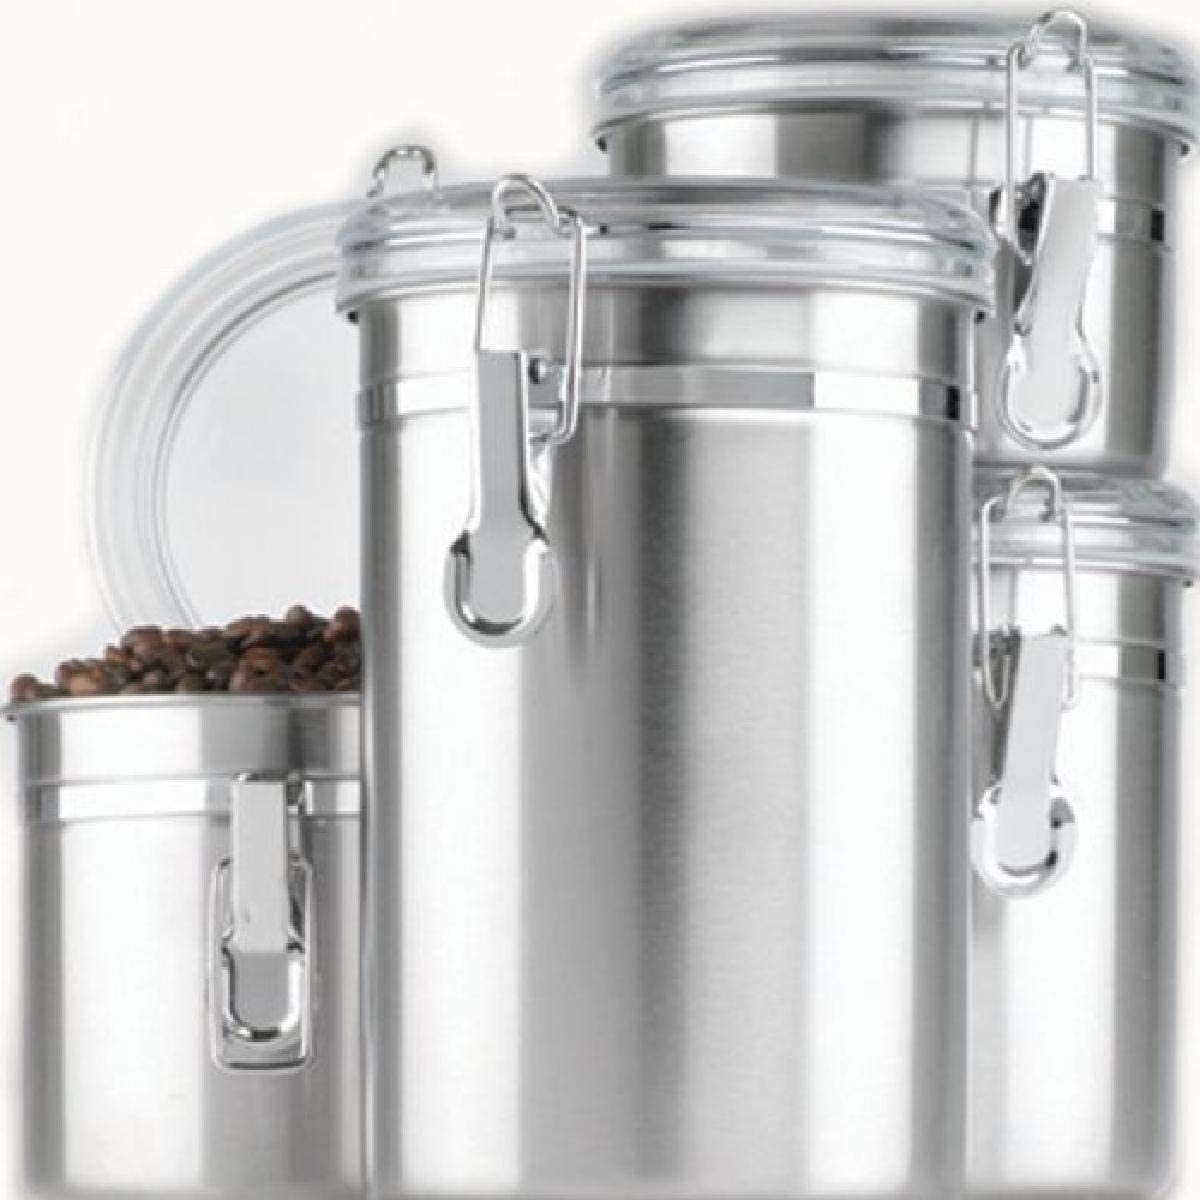 Anchor Hocking Round Stainless Steel Overseas parallel import regular item Clear Set Canister Max 87% OFF with Acr